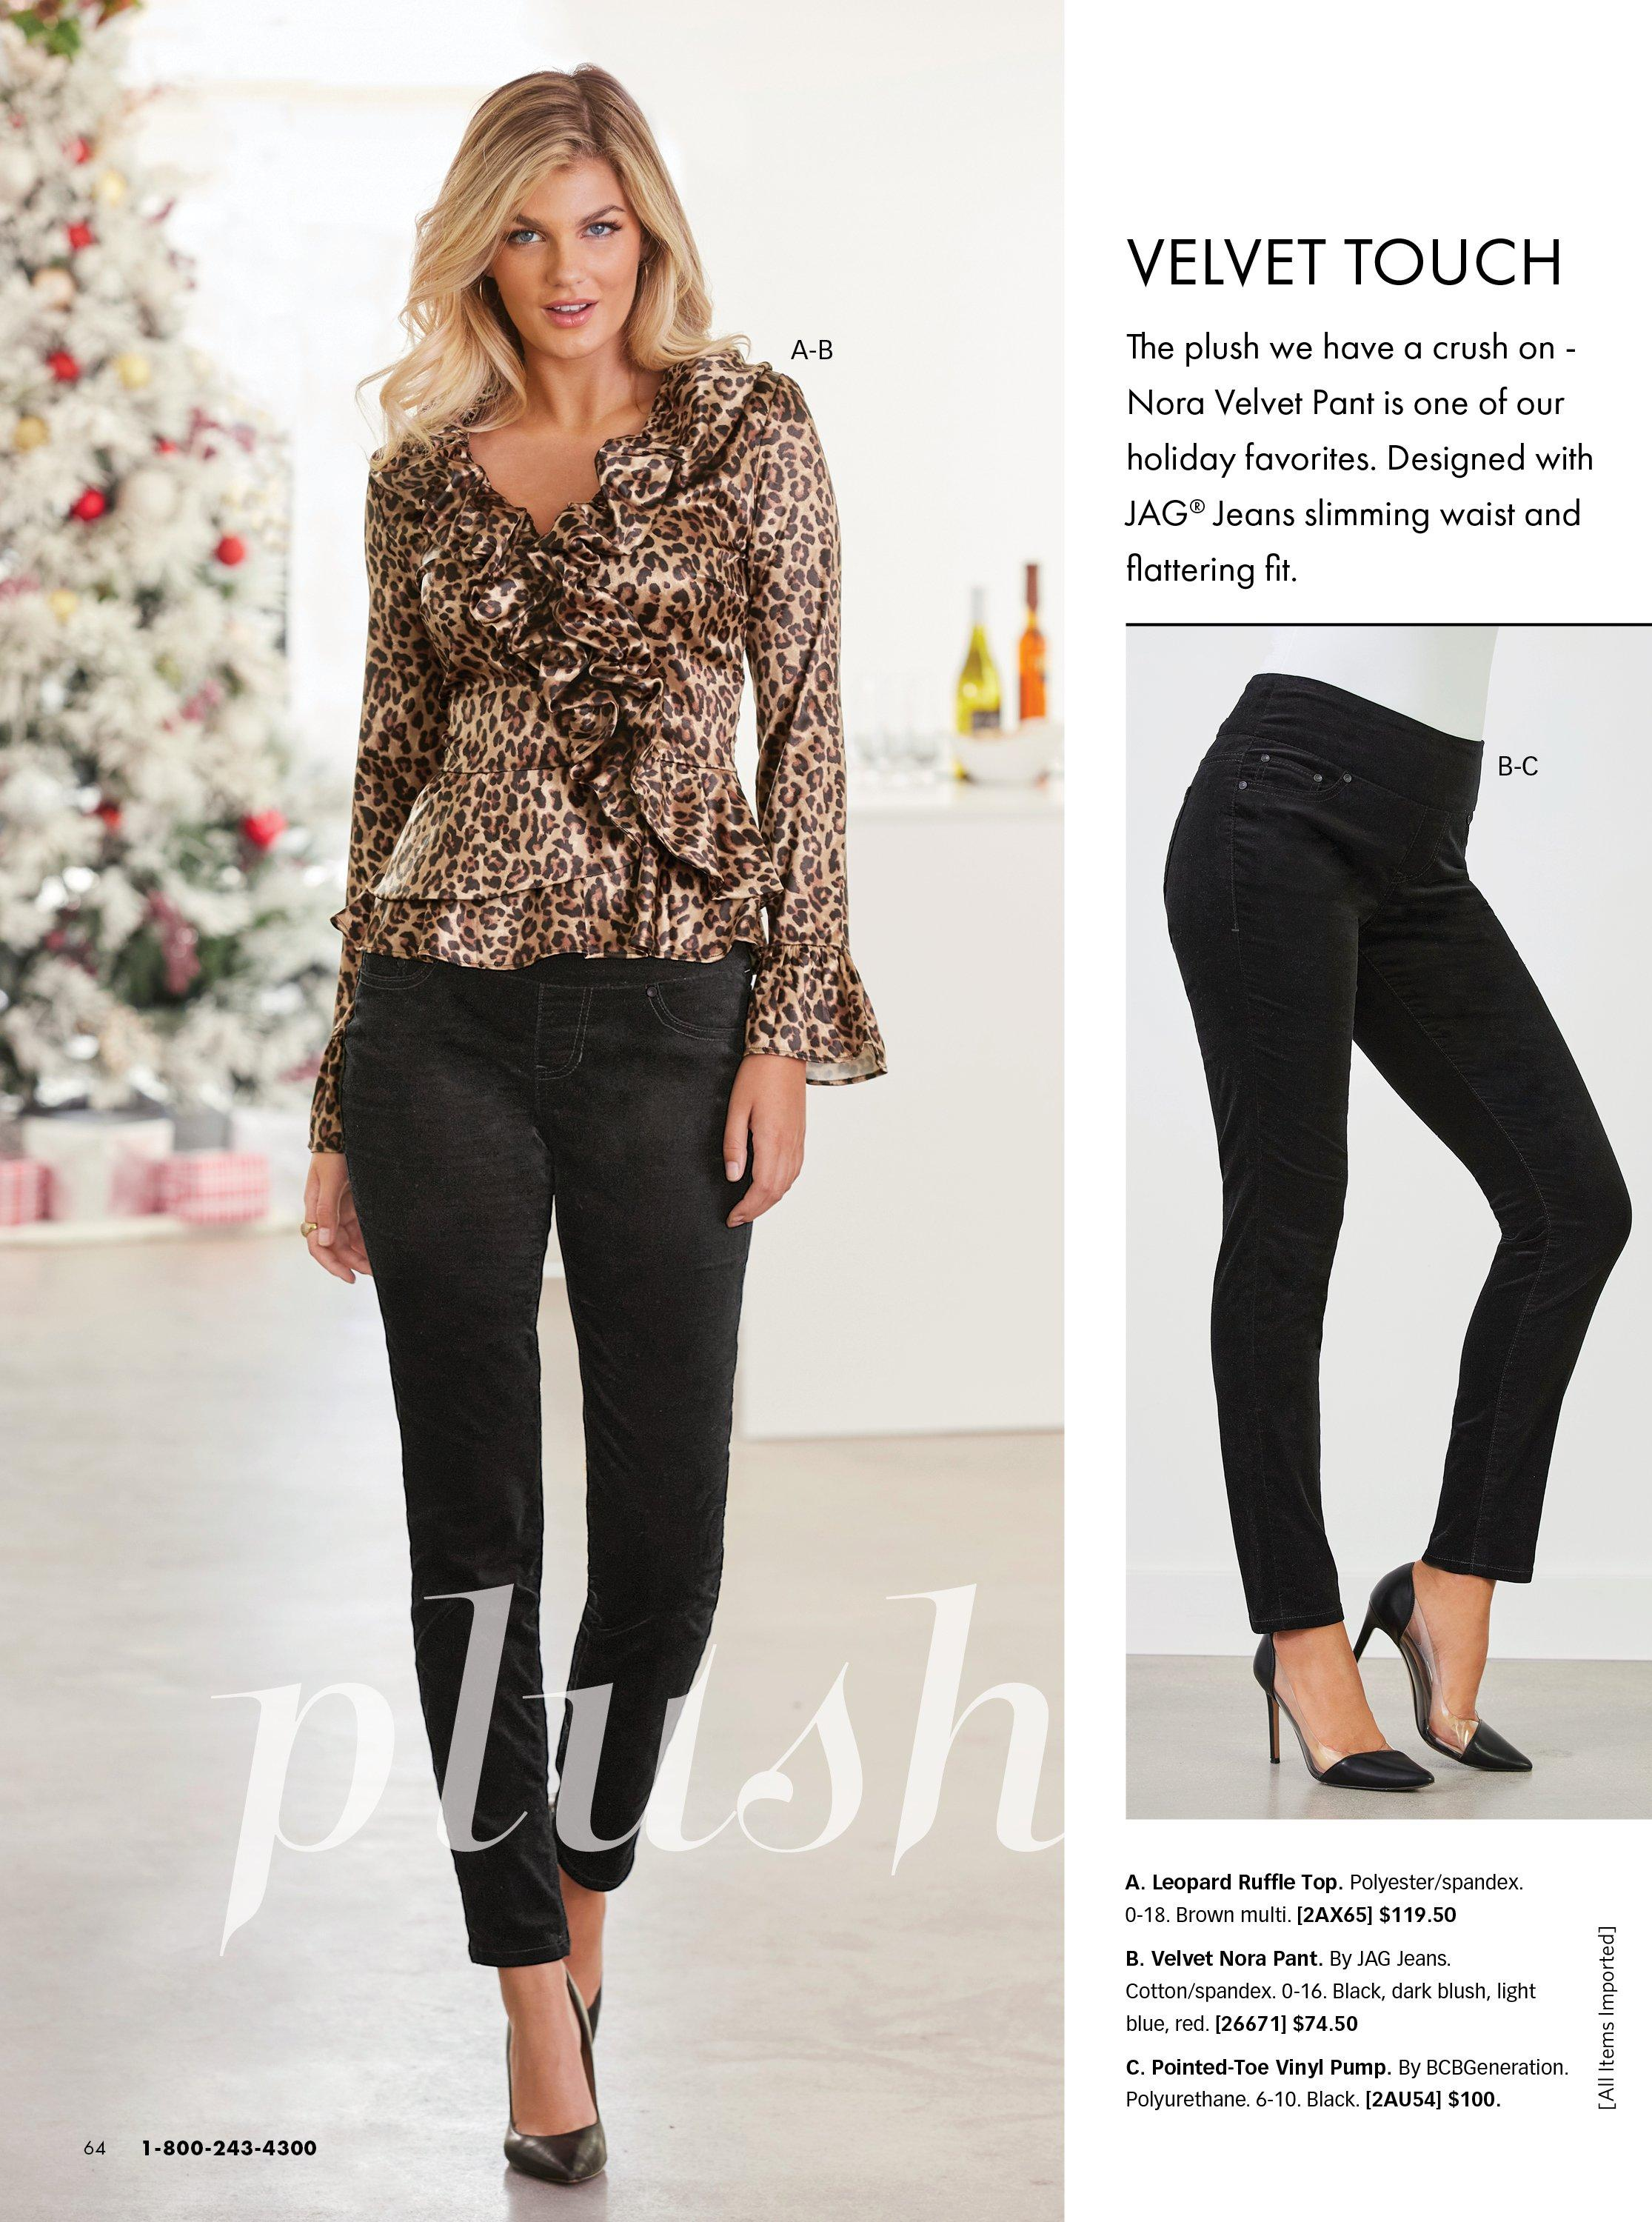 model wearing a leopard print ruffle long-sleeve blouse, black velvet pull-on pants, and black pumps. left panel shows black velvet pants and black vinyl heels.